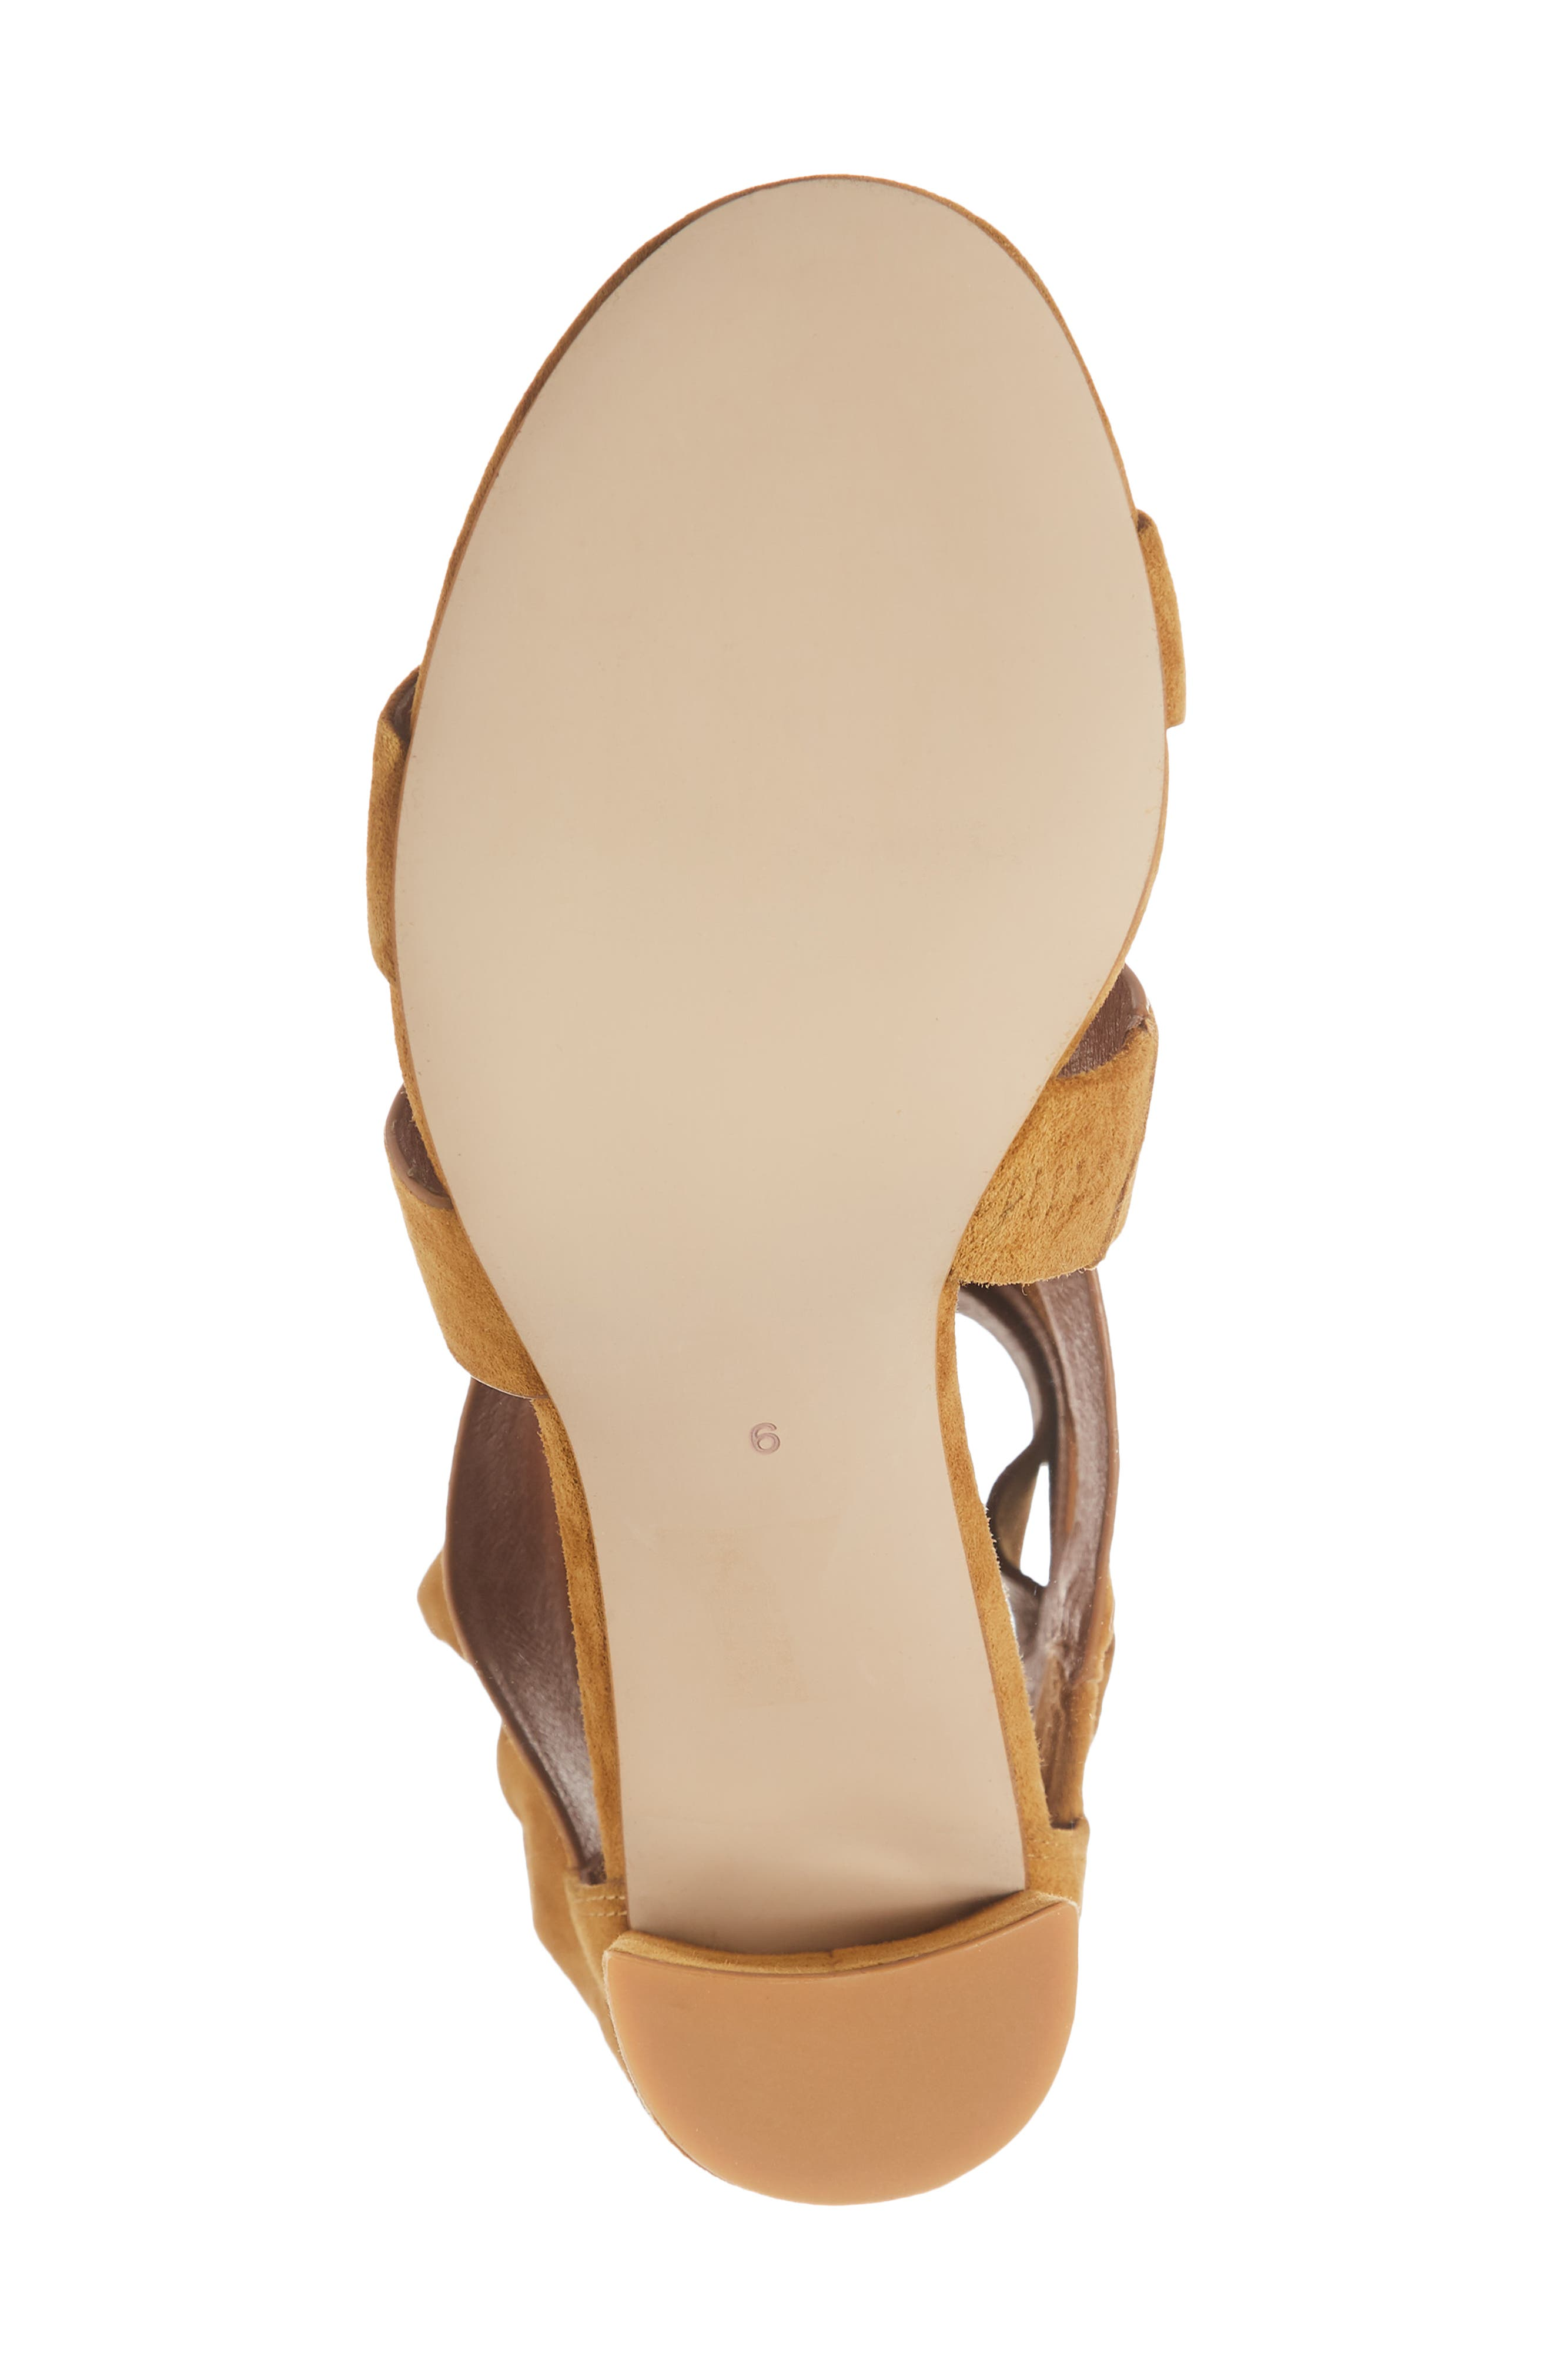 Despoina Sandal,                             Alternate thumbnail 4, color,                             Mustard Suede Leather